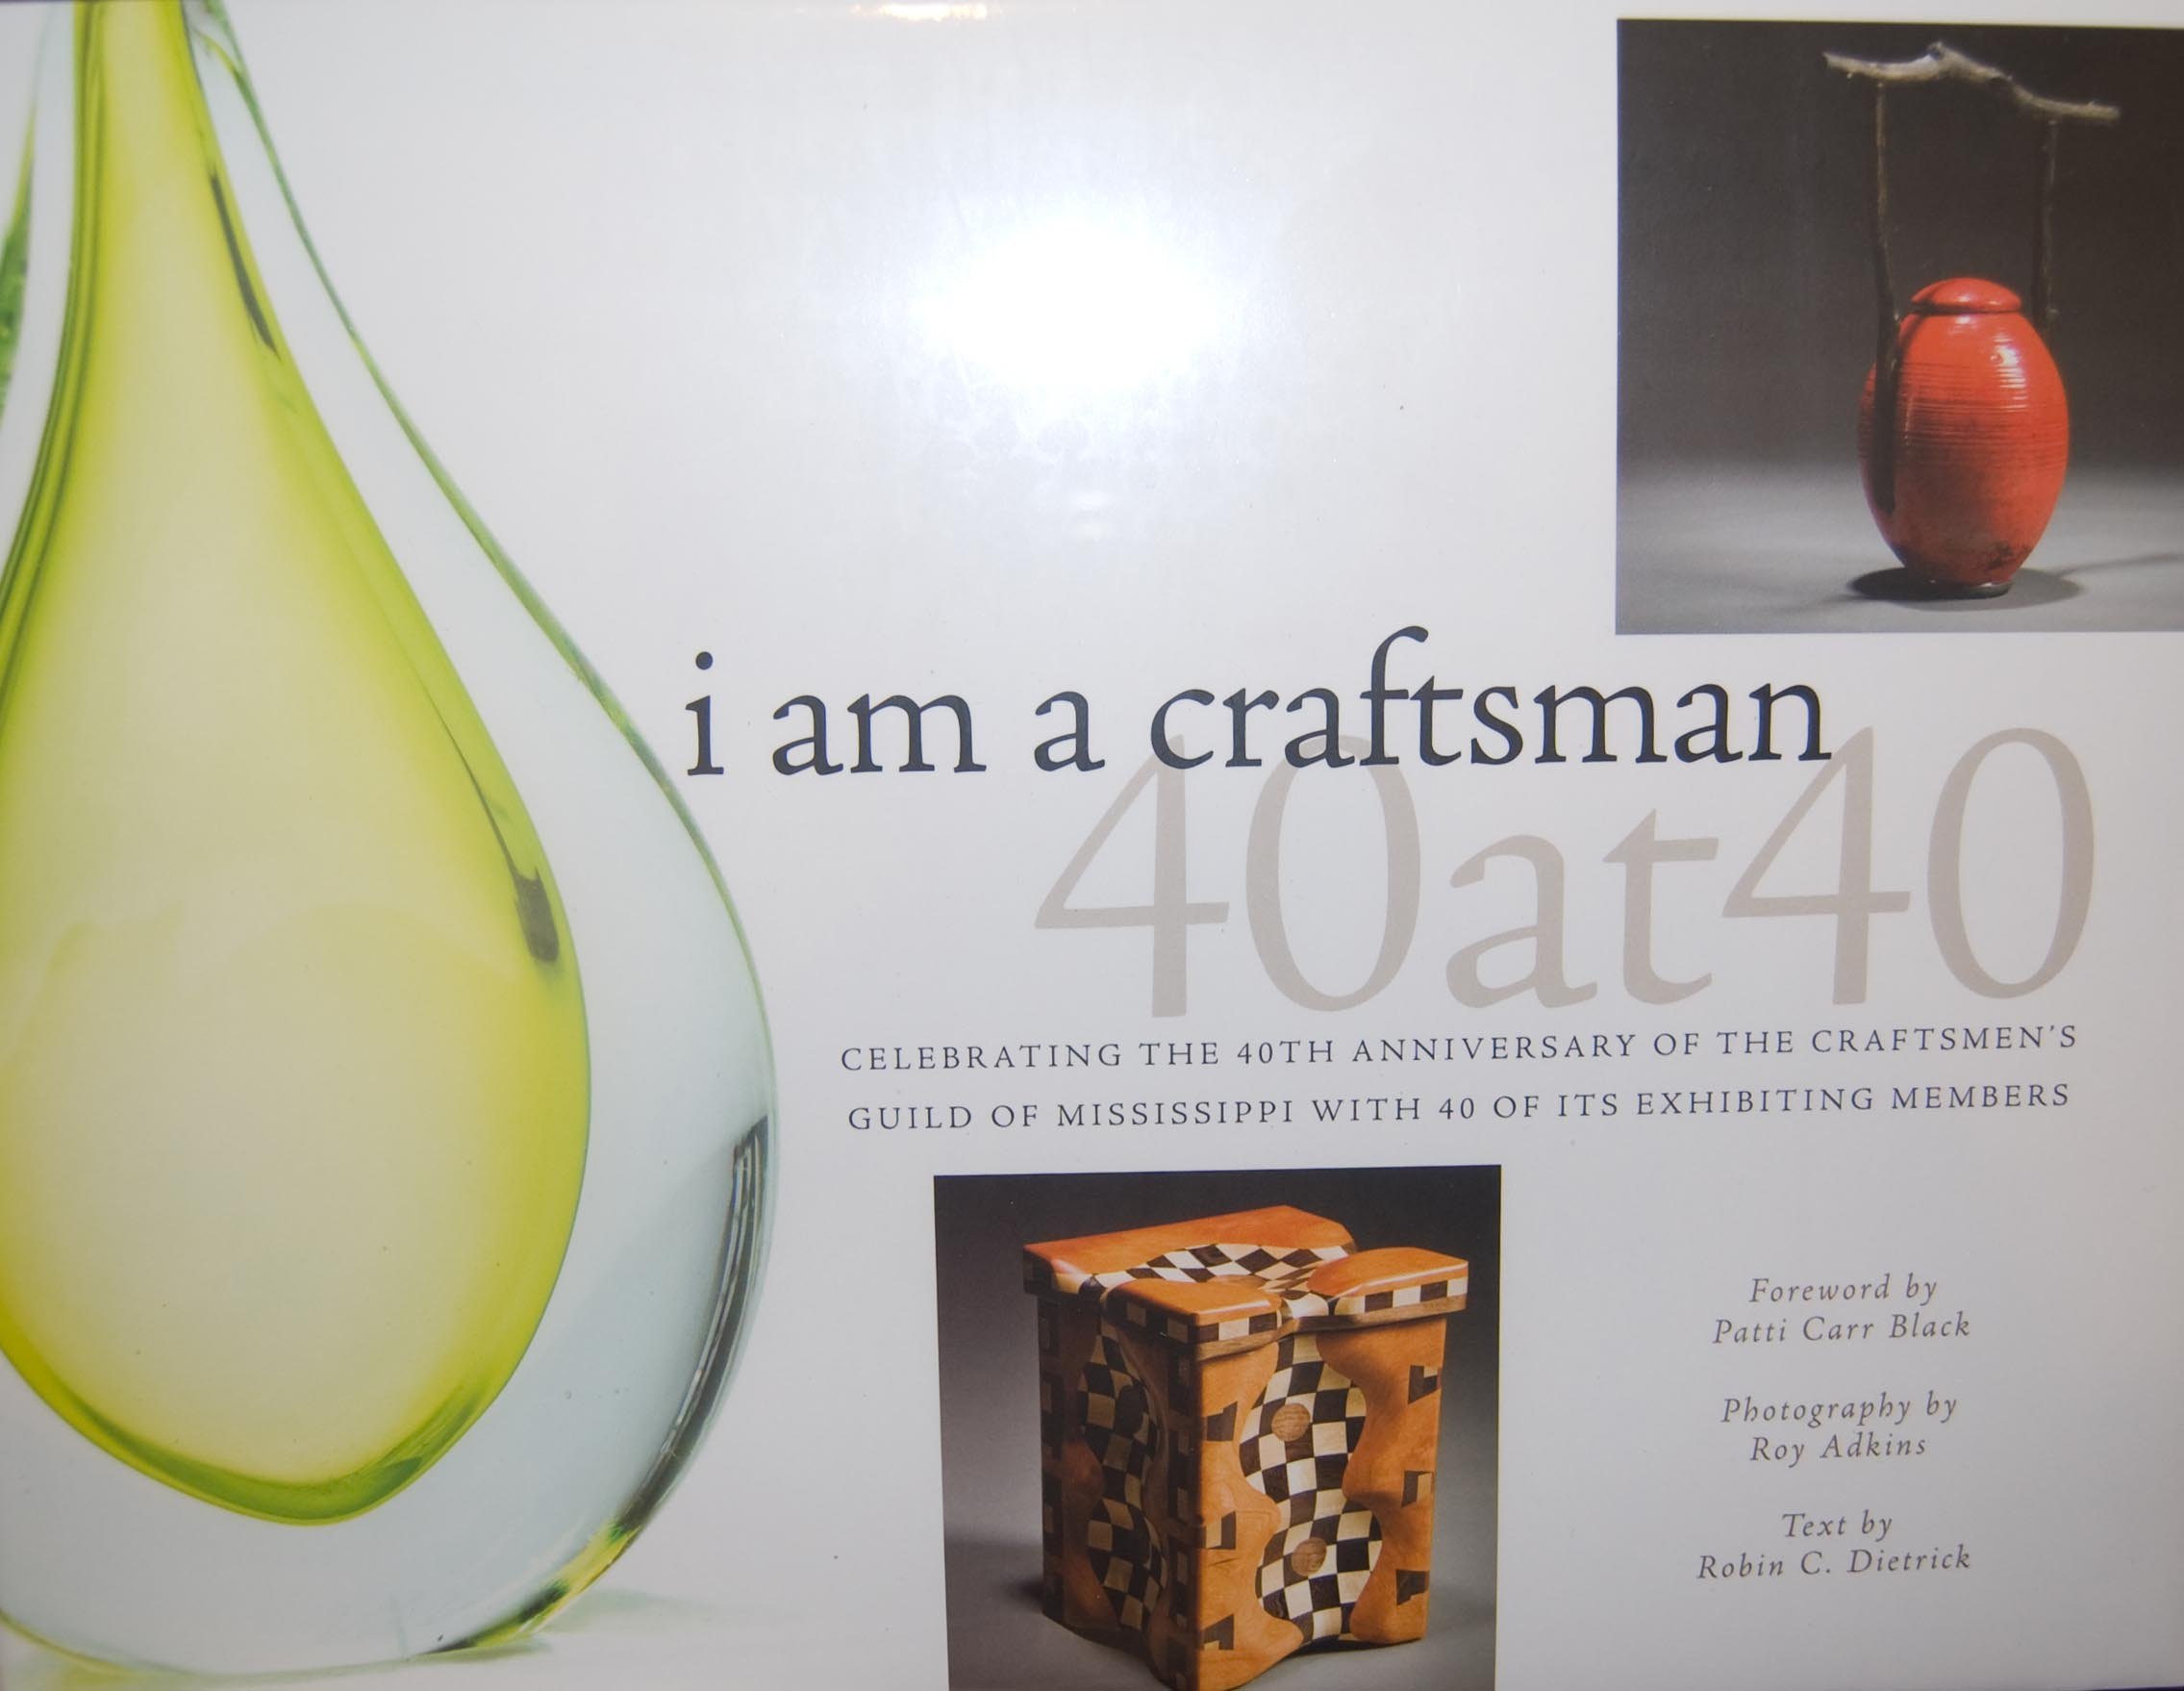 i am a craftsman - 40 at 40 book, celebrating 40 years of the craftsmen's guild of mississippi with 40 exceptional mississippi craftsmen